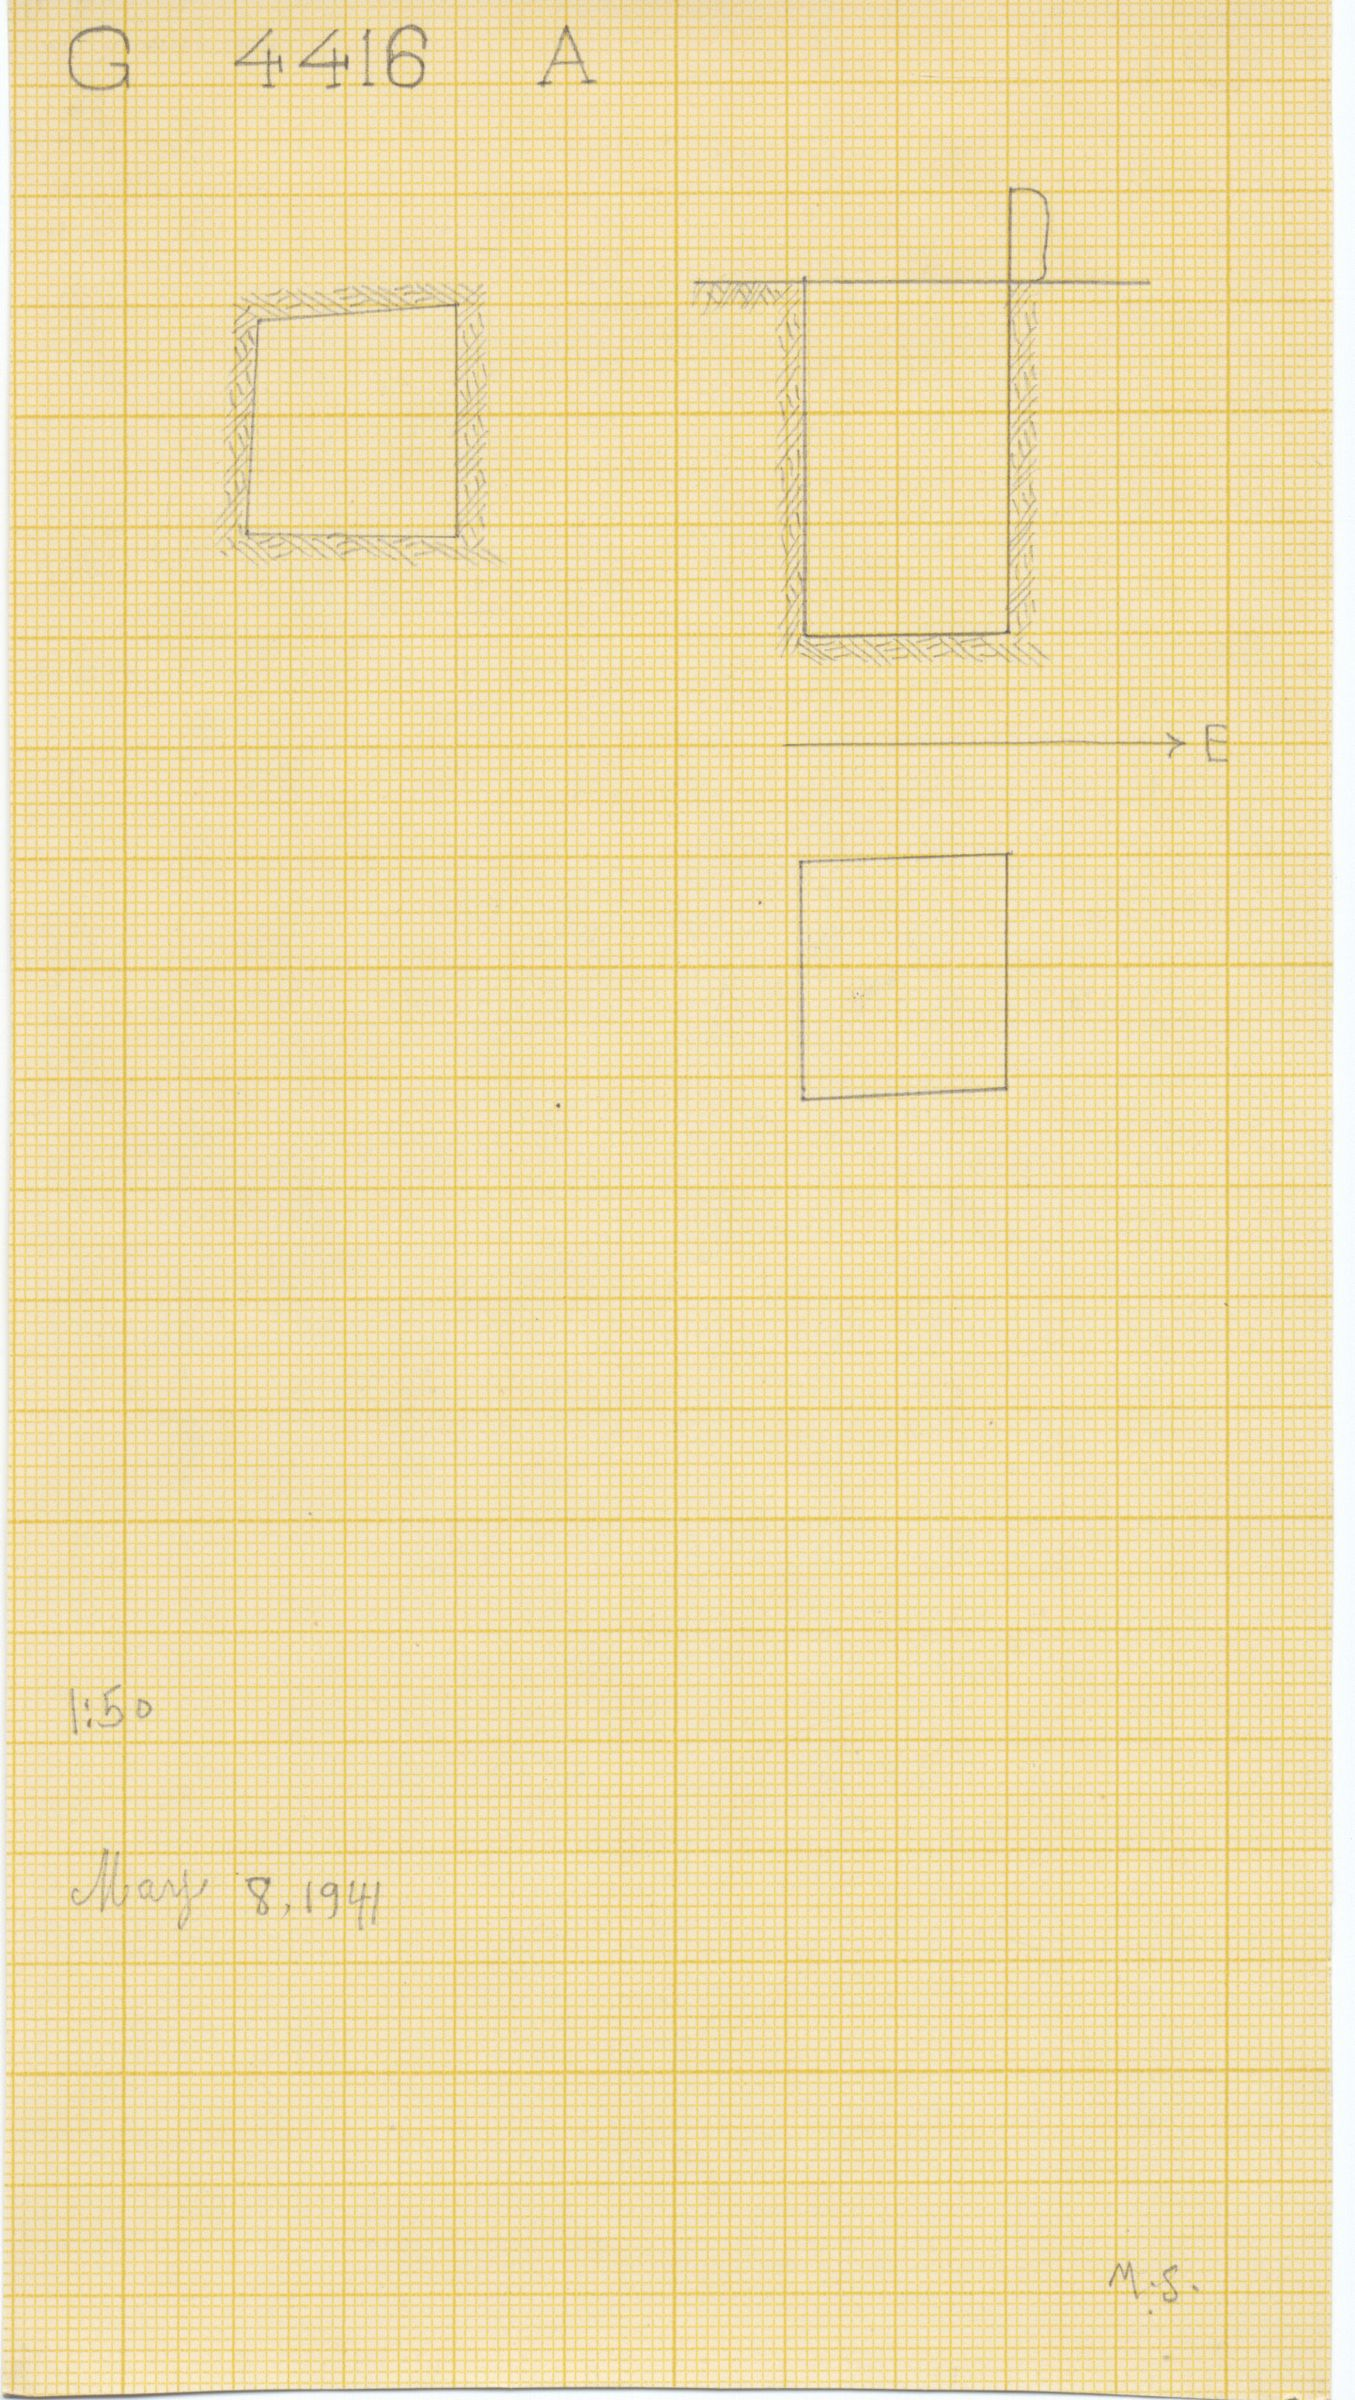 Maps and plans: G 4416, Shaft A